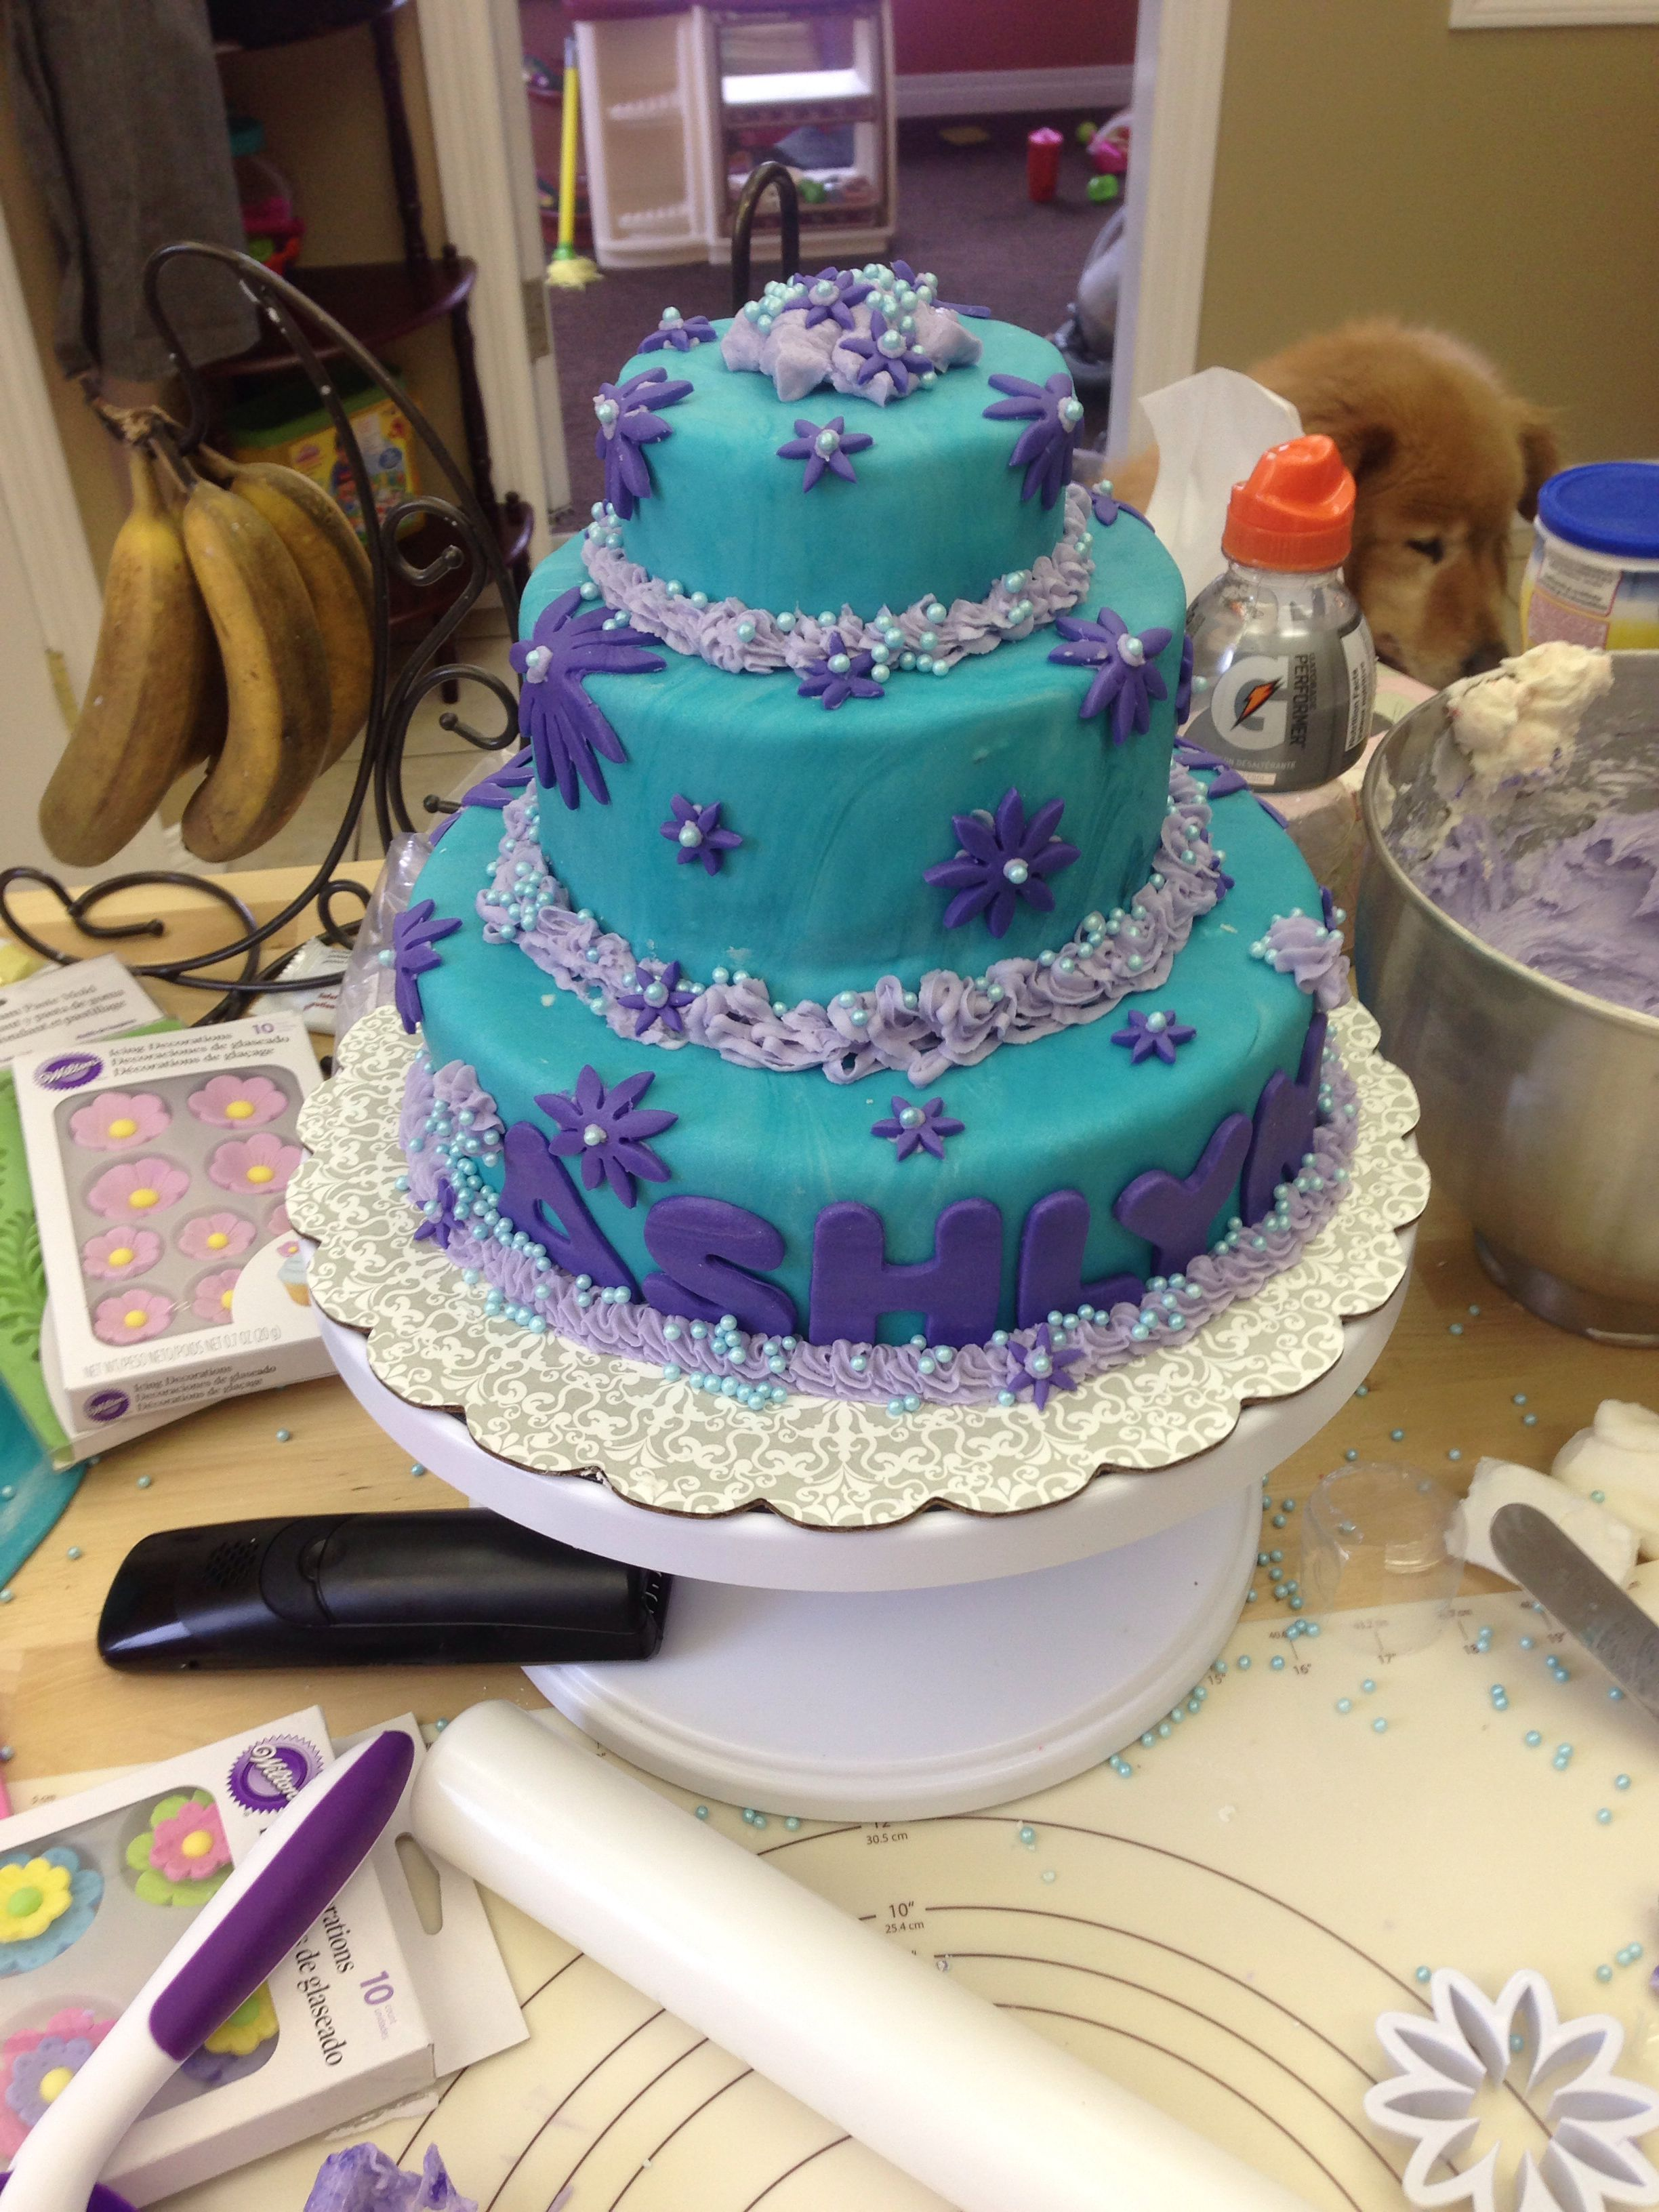 3 Tier Teal With Purple Flowers Fondant Polka Dot Inside Birthday